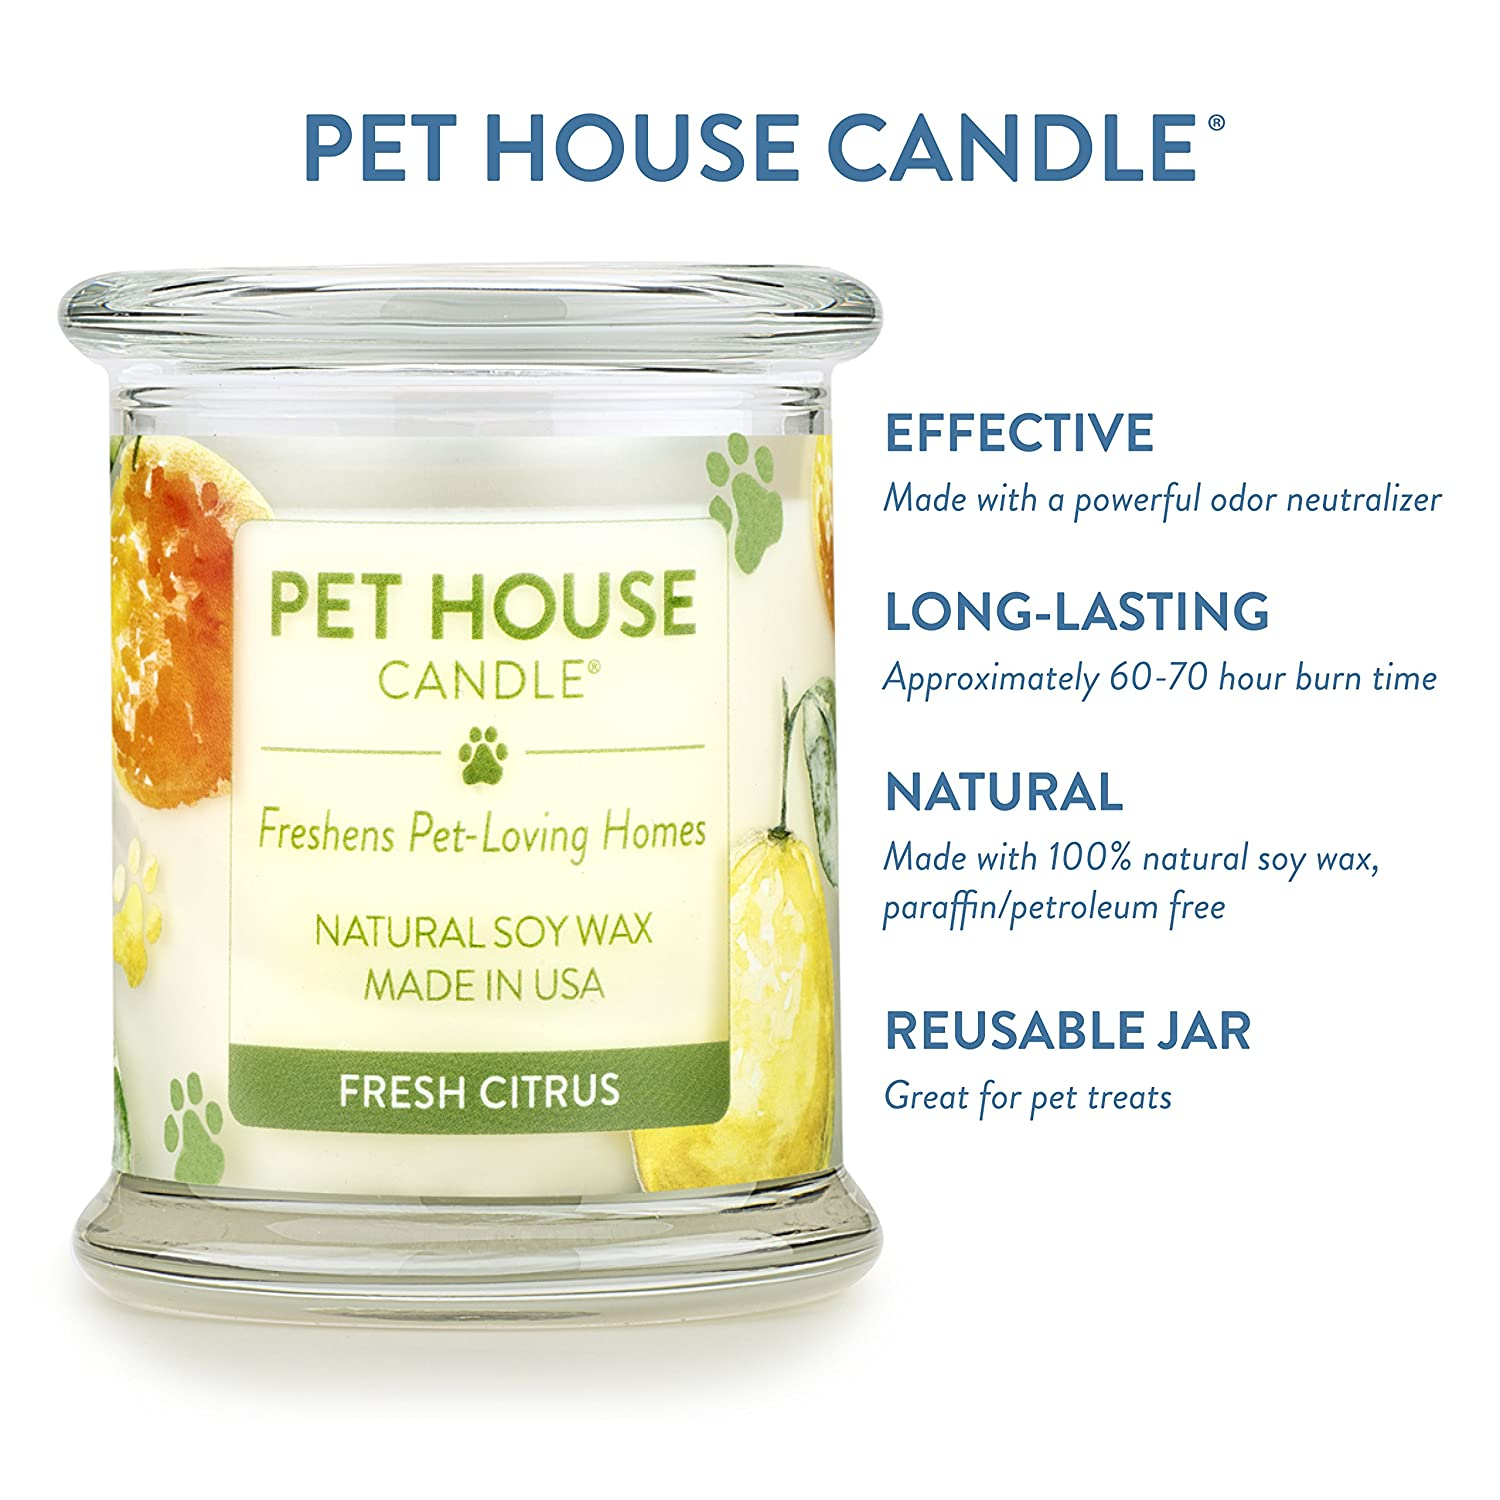 Amazon Pet House Candle in Fragrances All Natural Soy